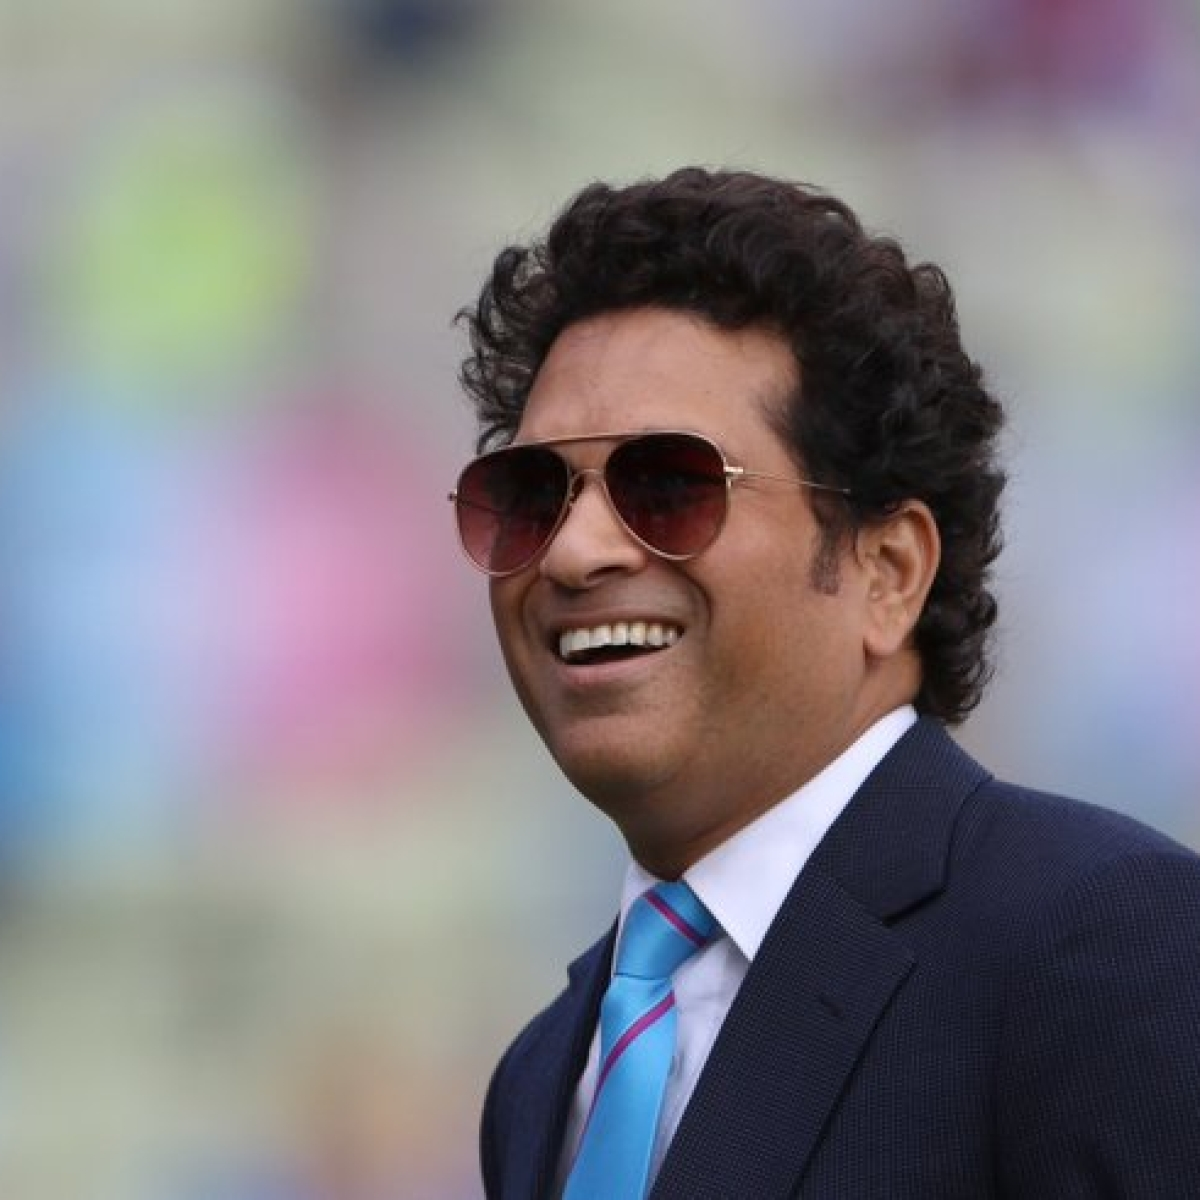 Sachin Tendulkar financially aids 4,000 underprivileged people in Mumbai to lead battle against COVID-19